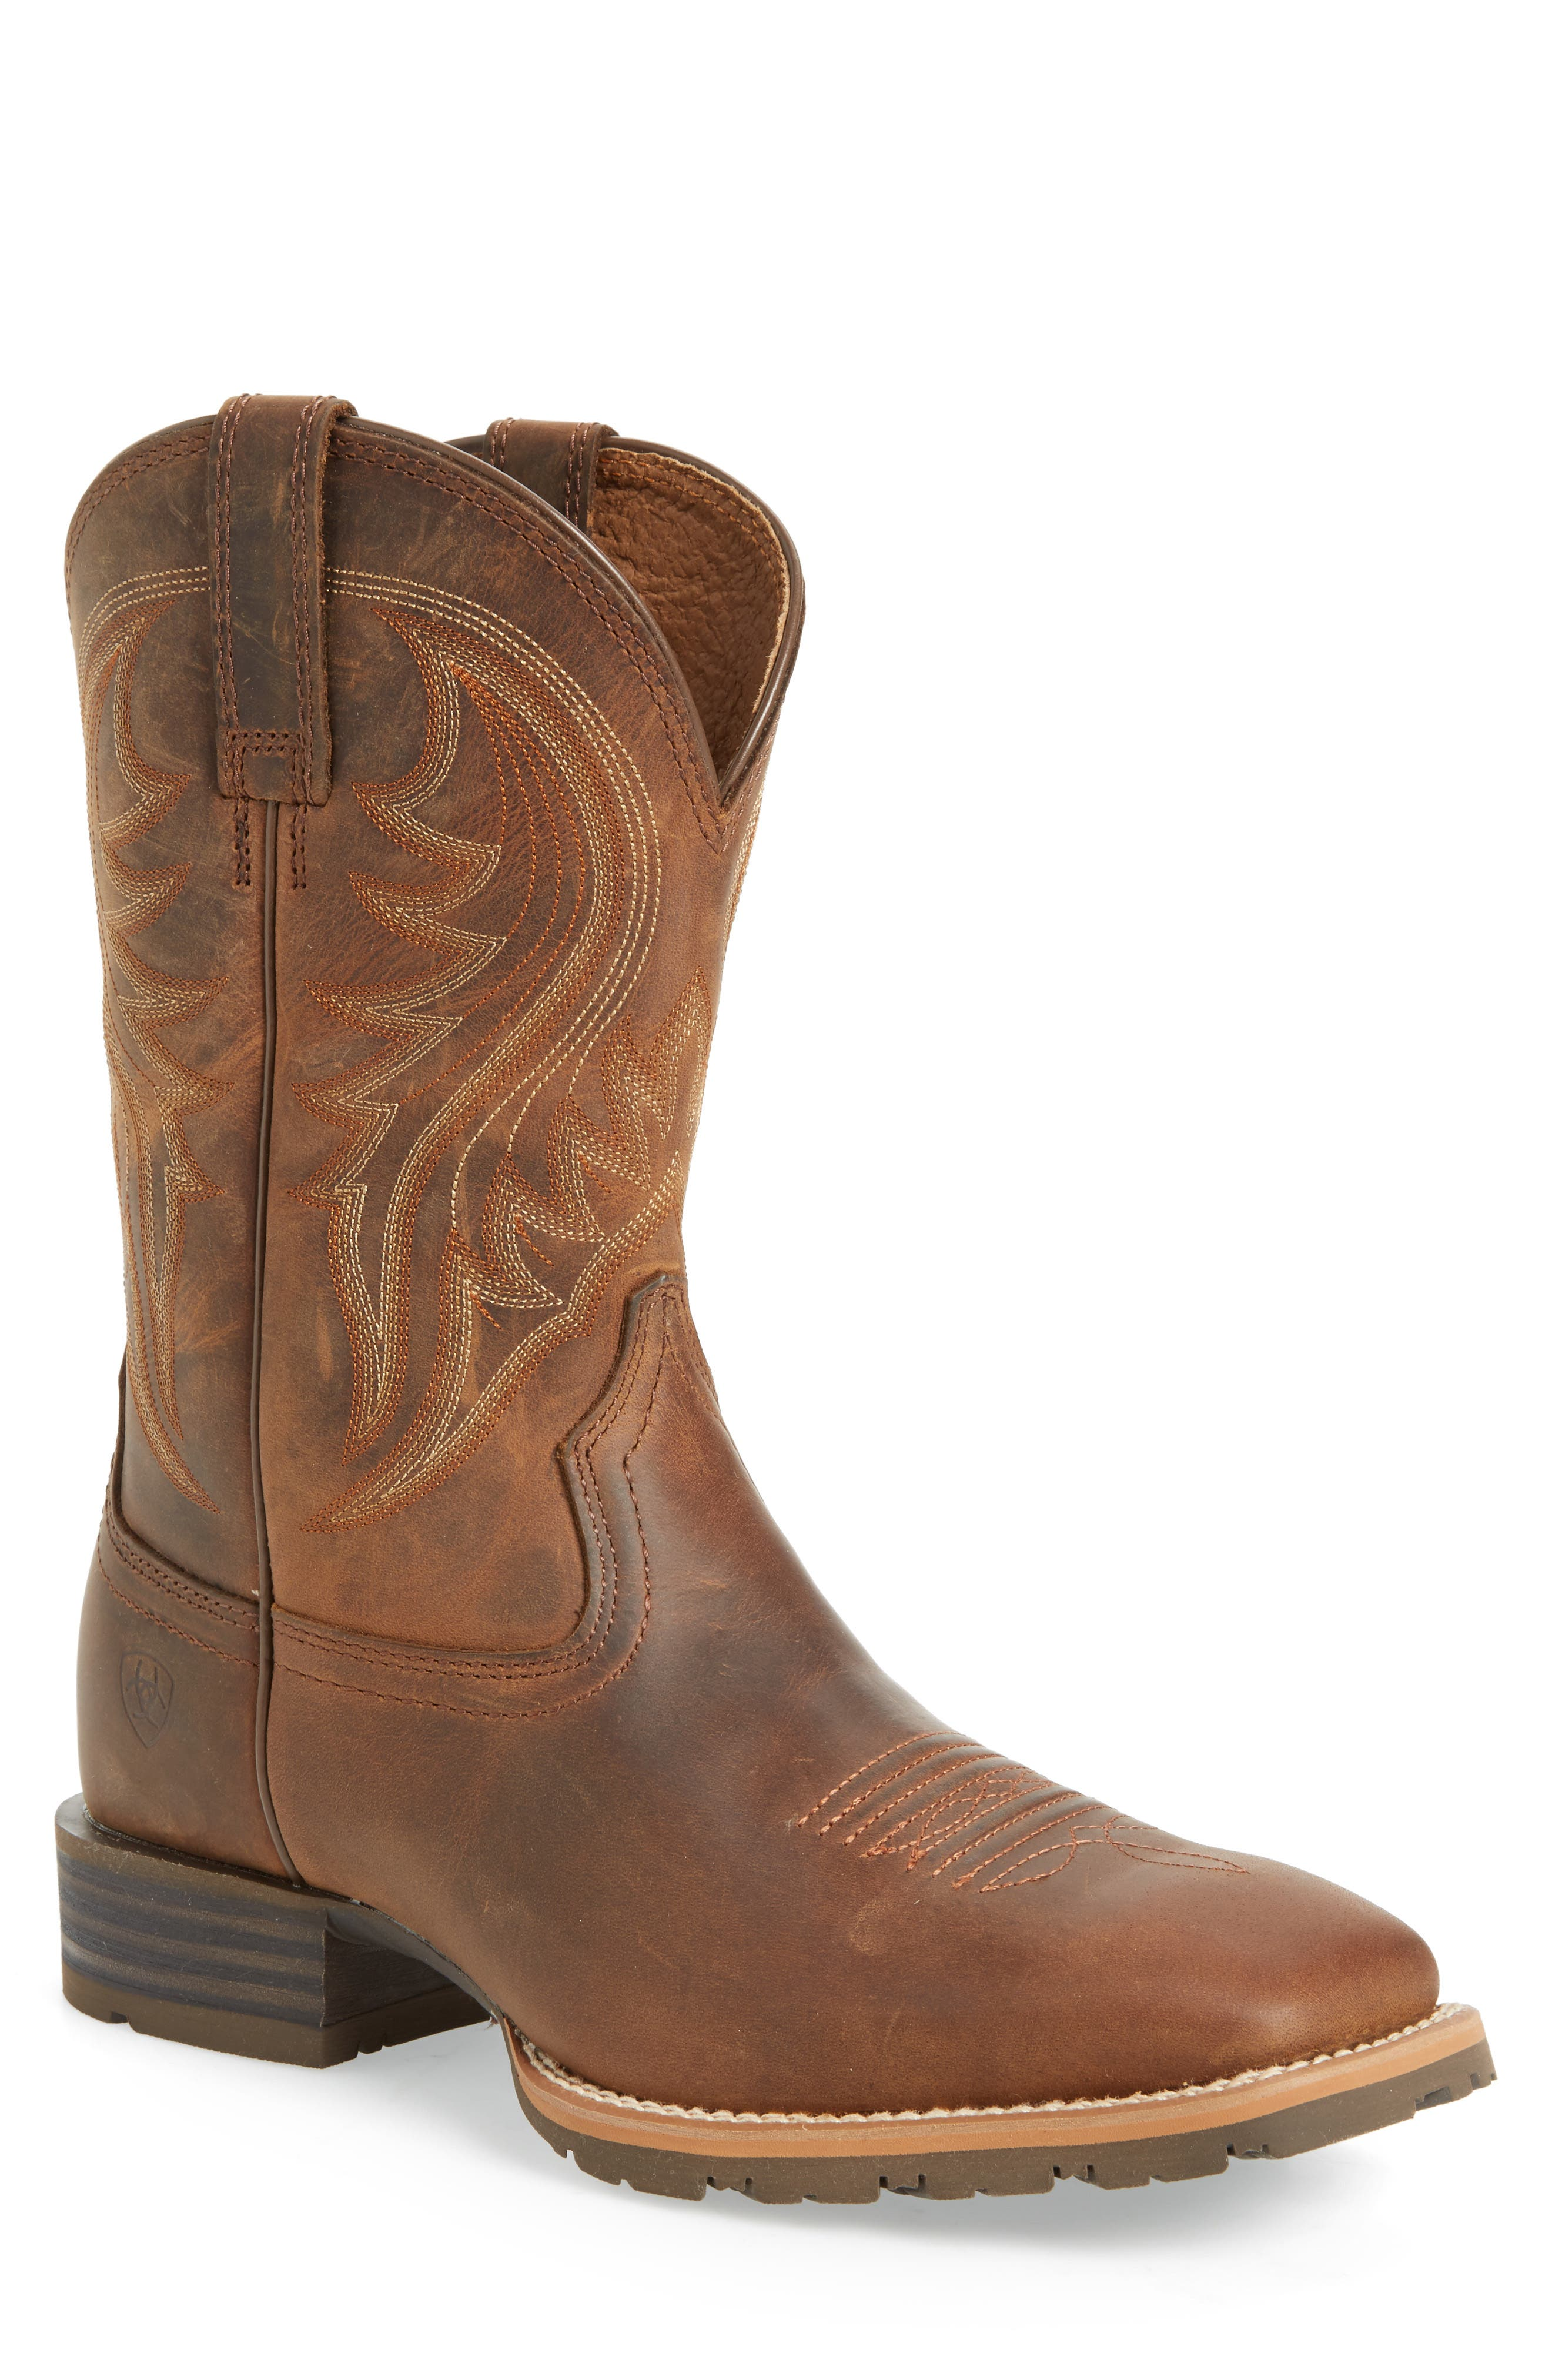 Hybrid Rancher Cowboy Boot,                         Main,                         color, Distressed Brown Leather